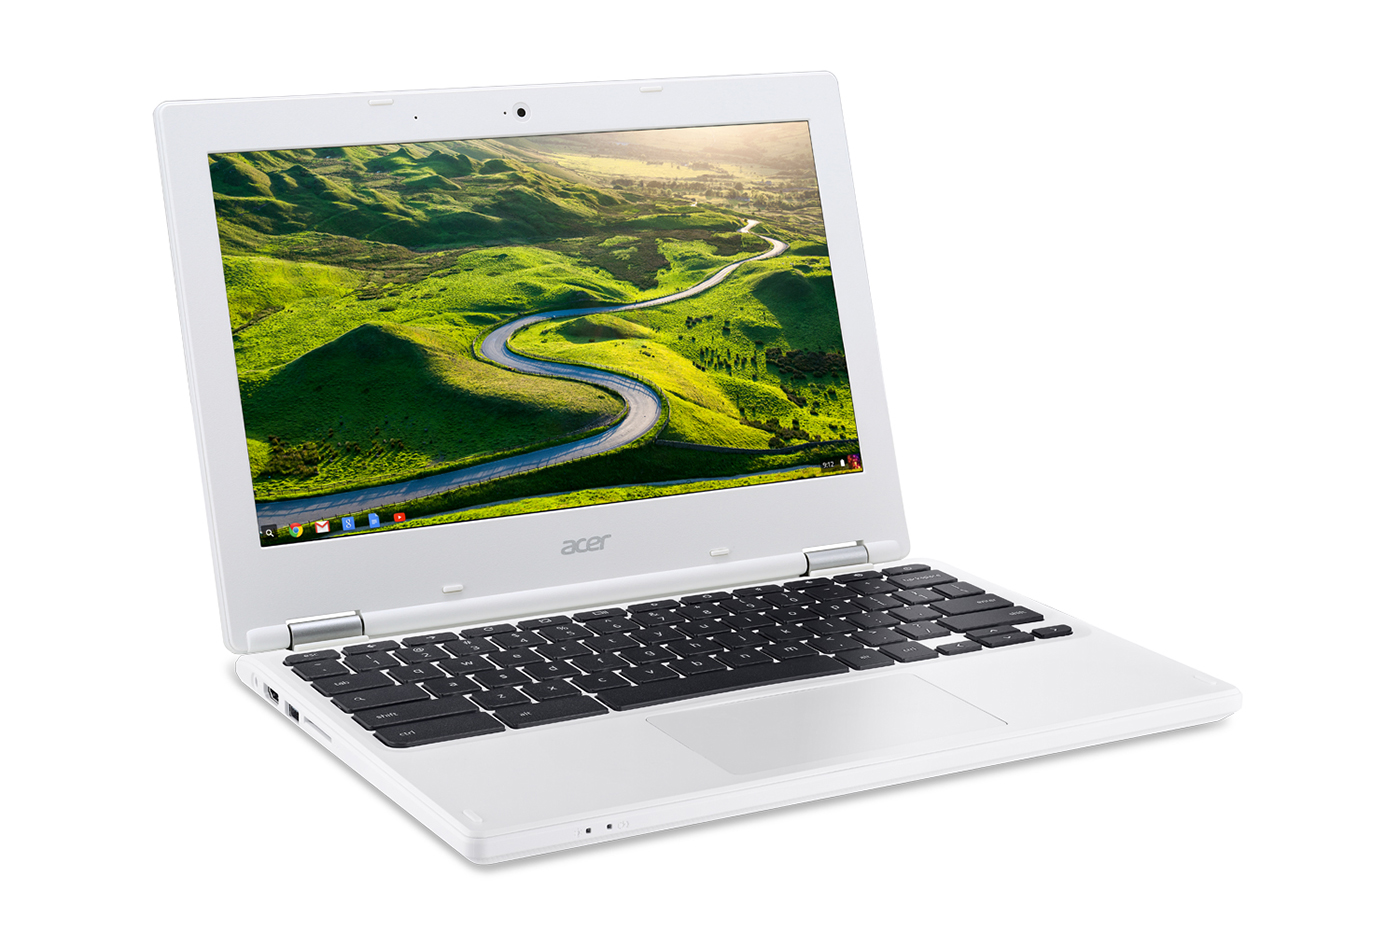 Acer adds a semi-rugged $180 model to its Chromebook line